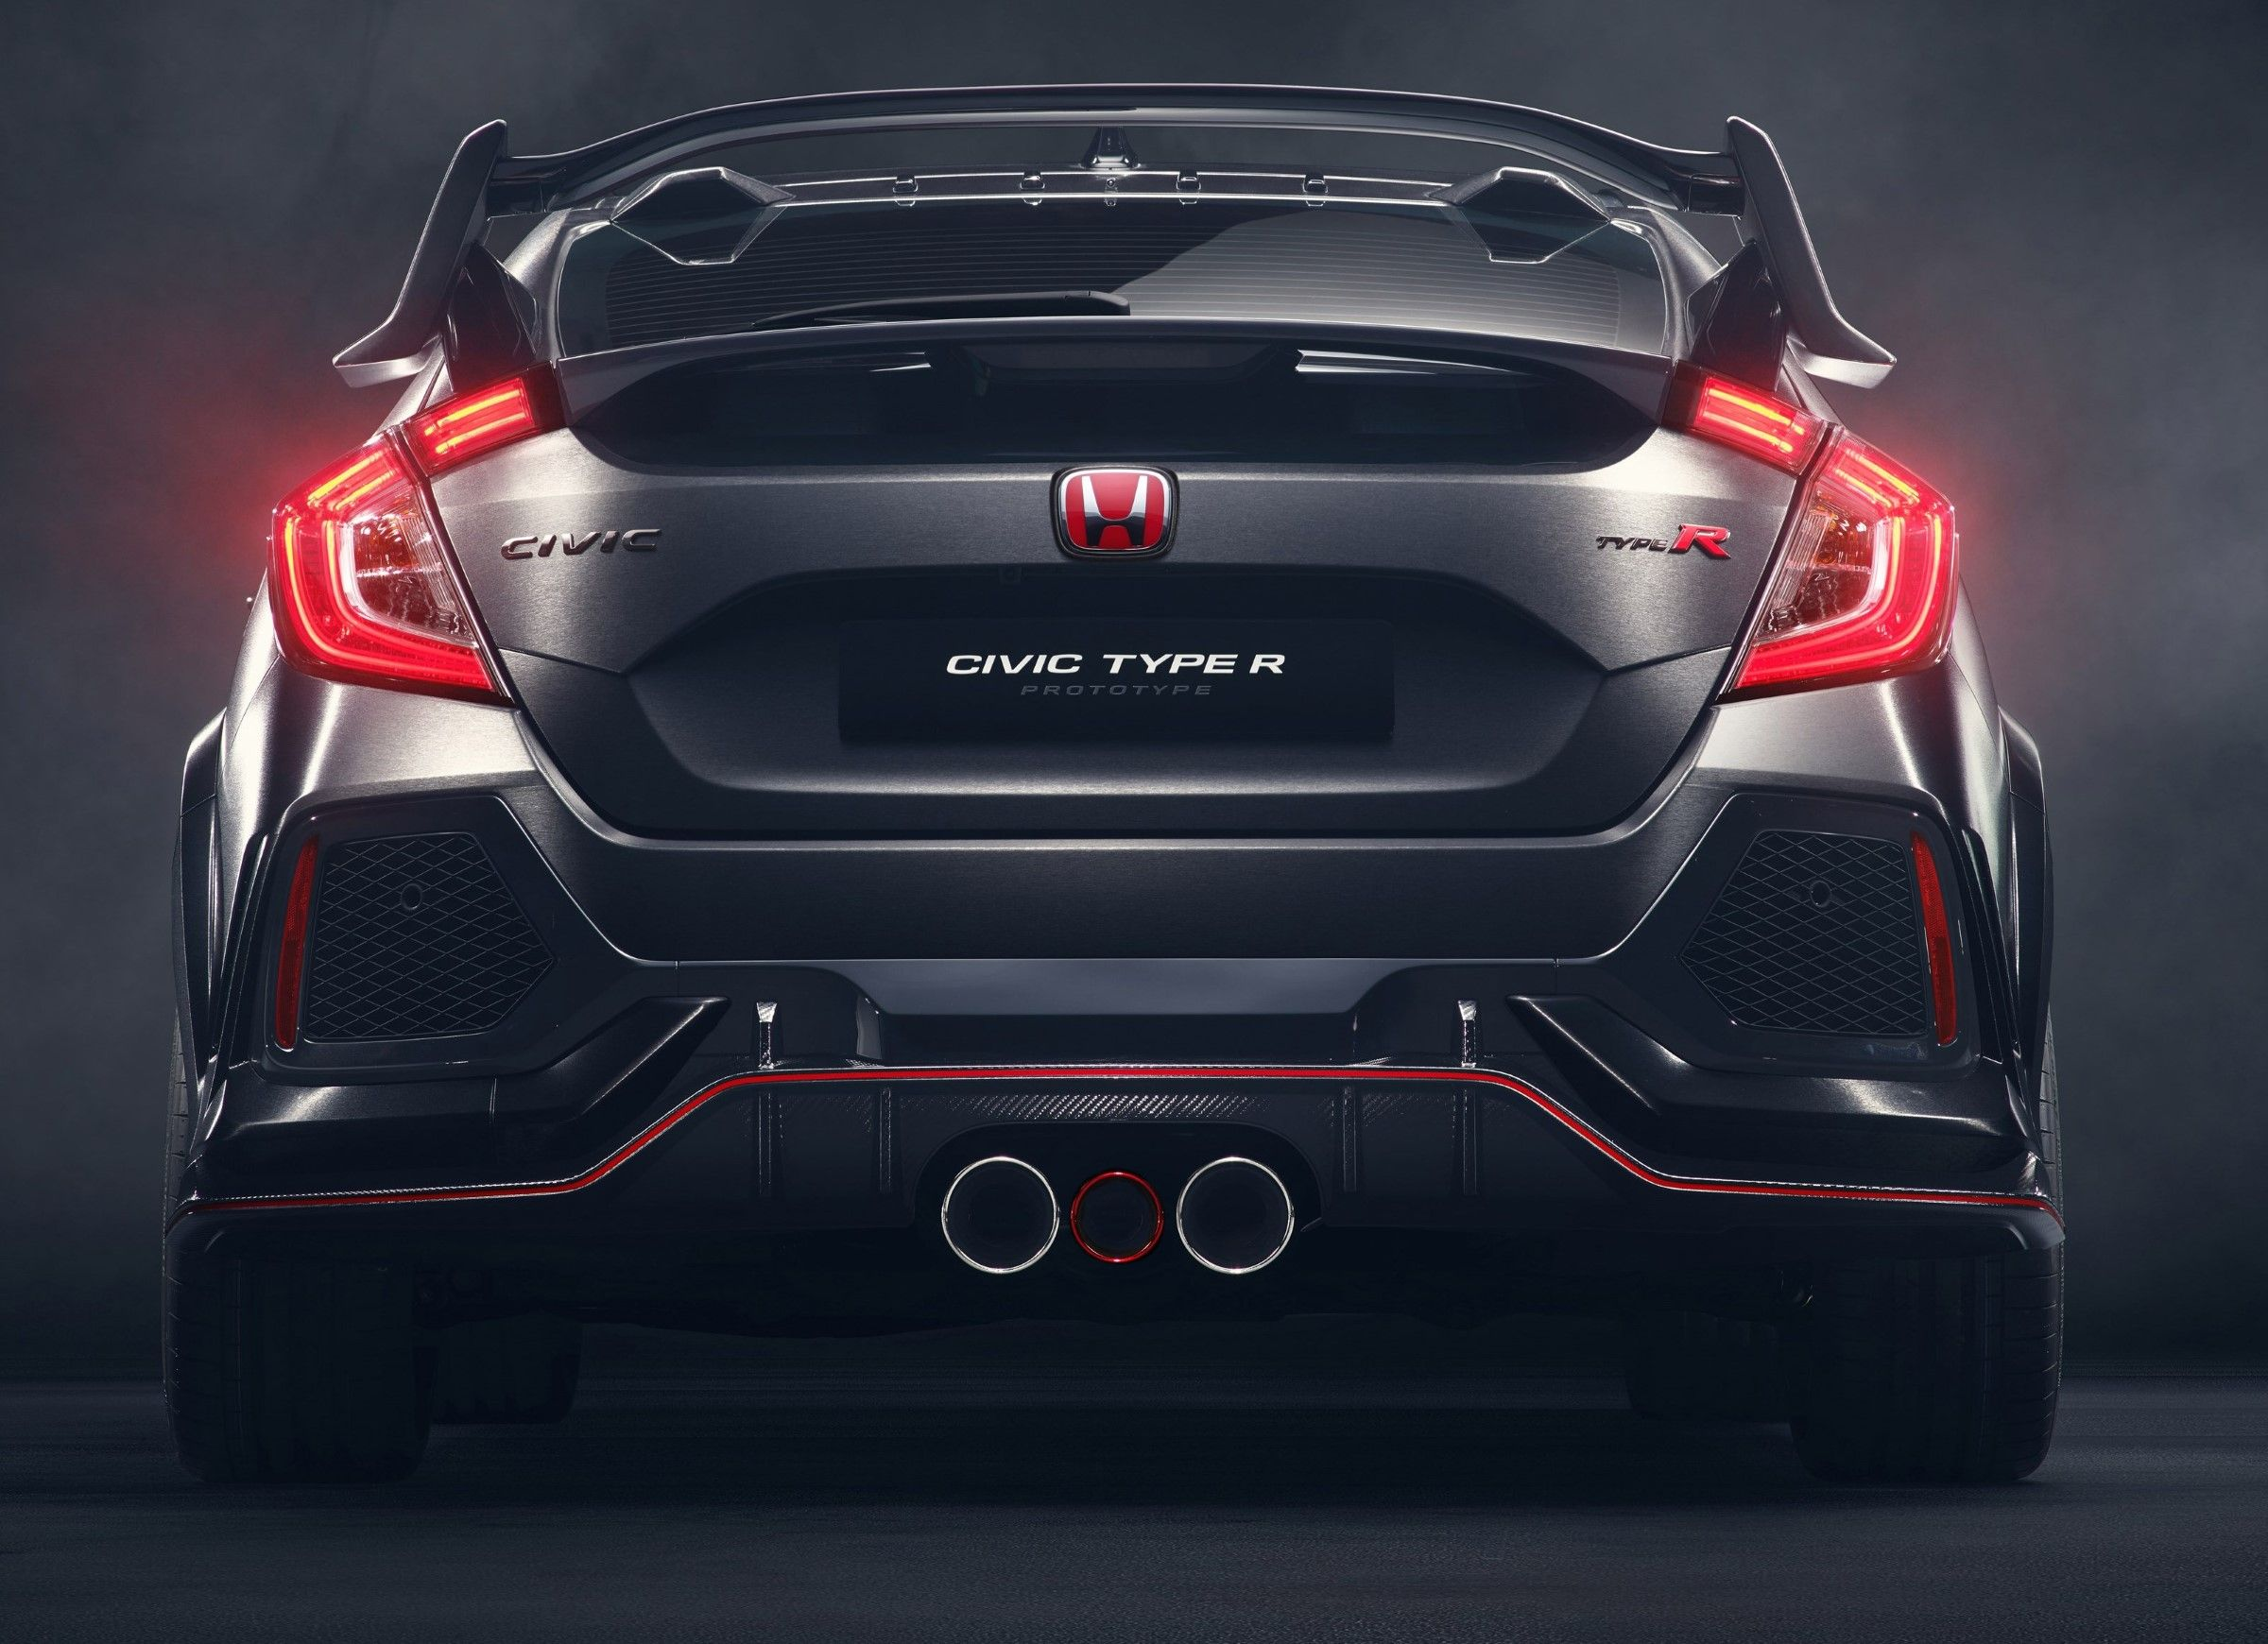 Joining the new honda civic hatchback in a world premiere at the paris auto show is the near production 2018 civic type r prototype and this one is coming